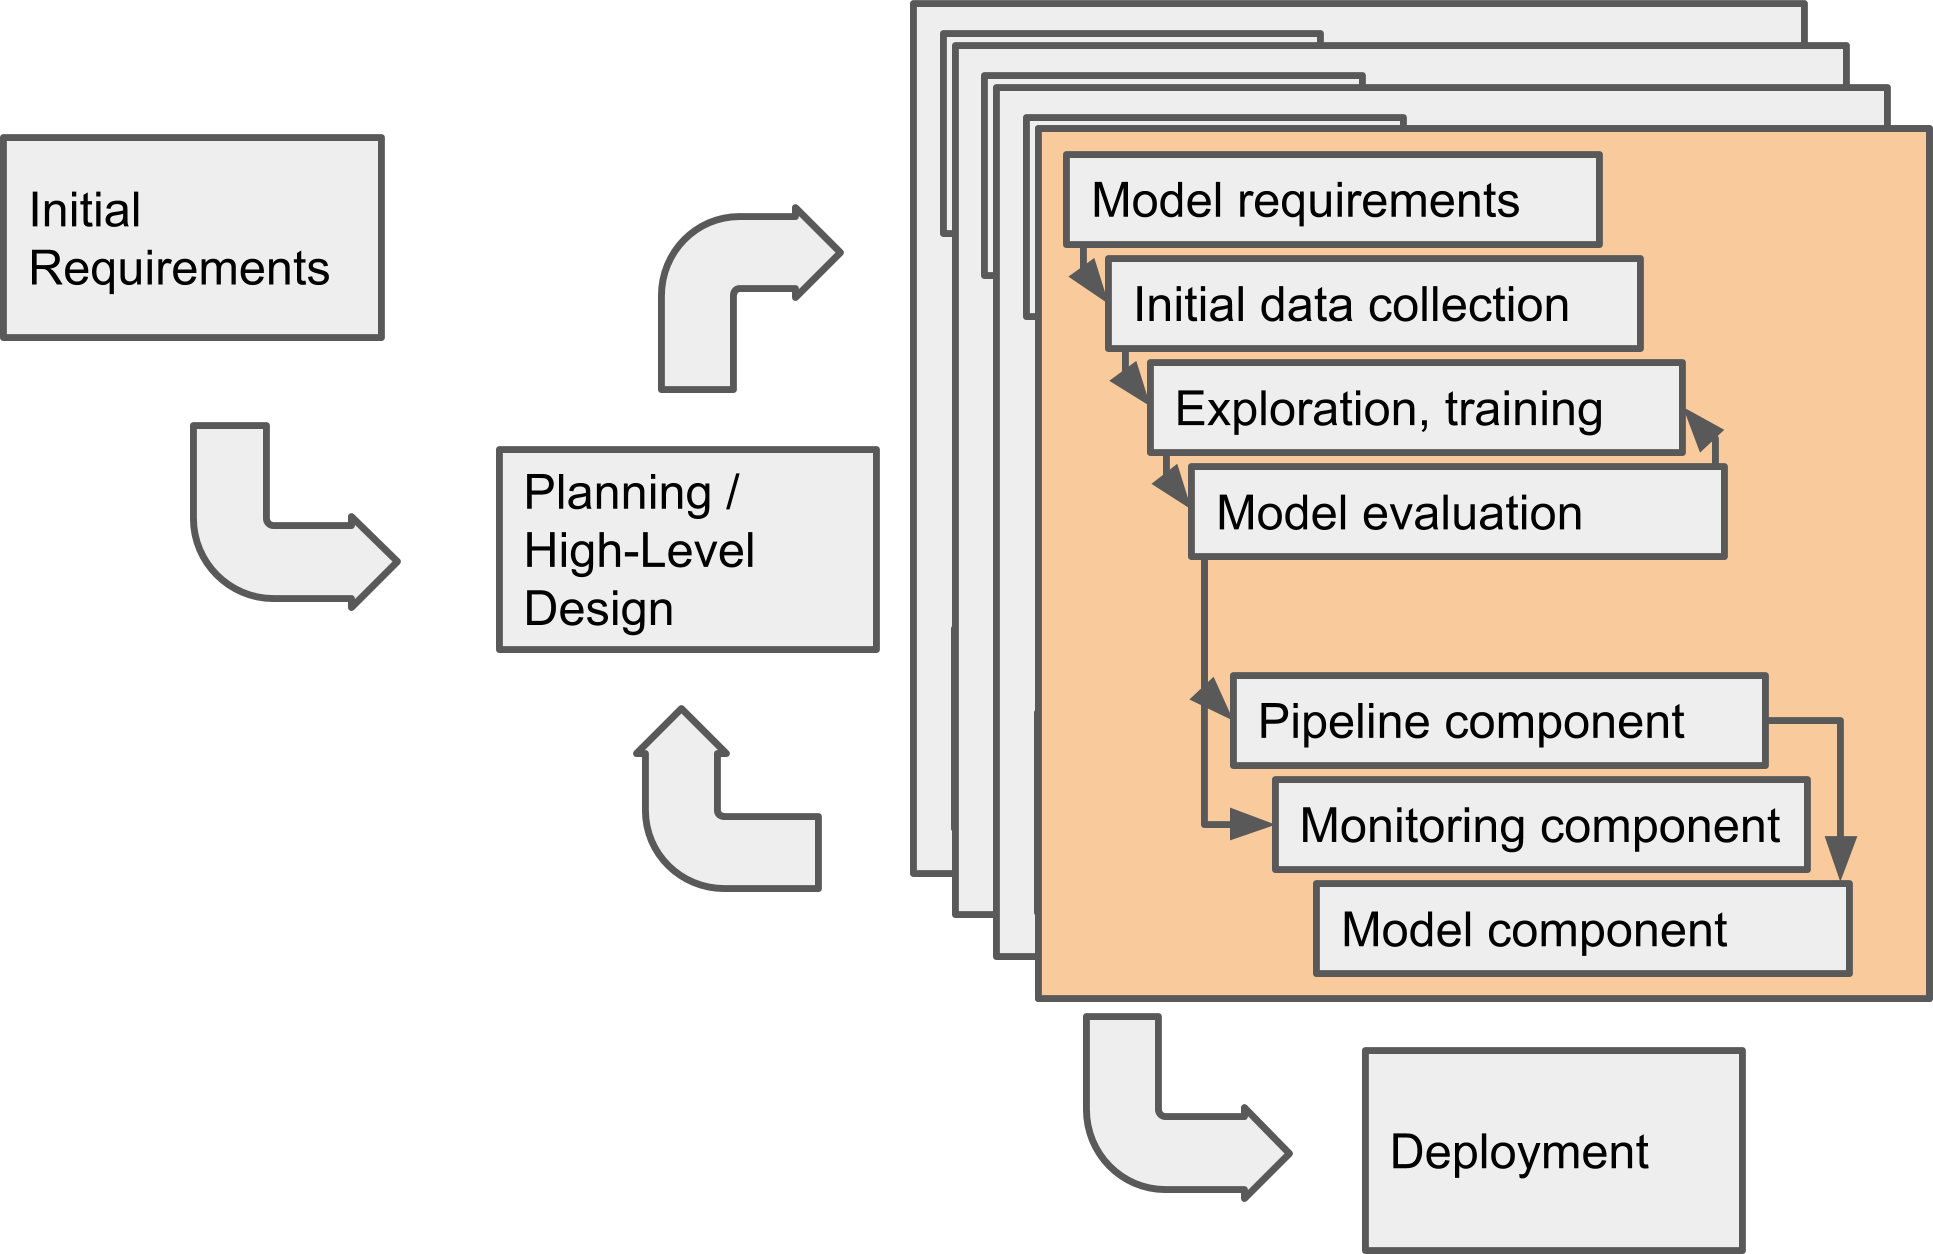 Revised process model that adapts the machine learning workflow in one component to emphasize the outputs